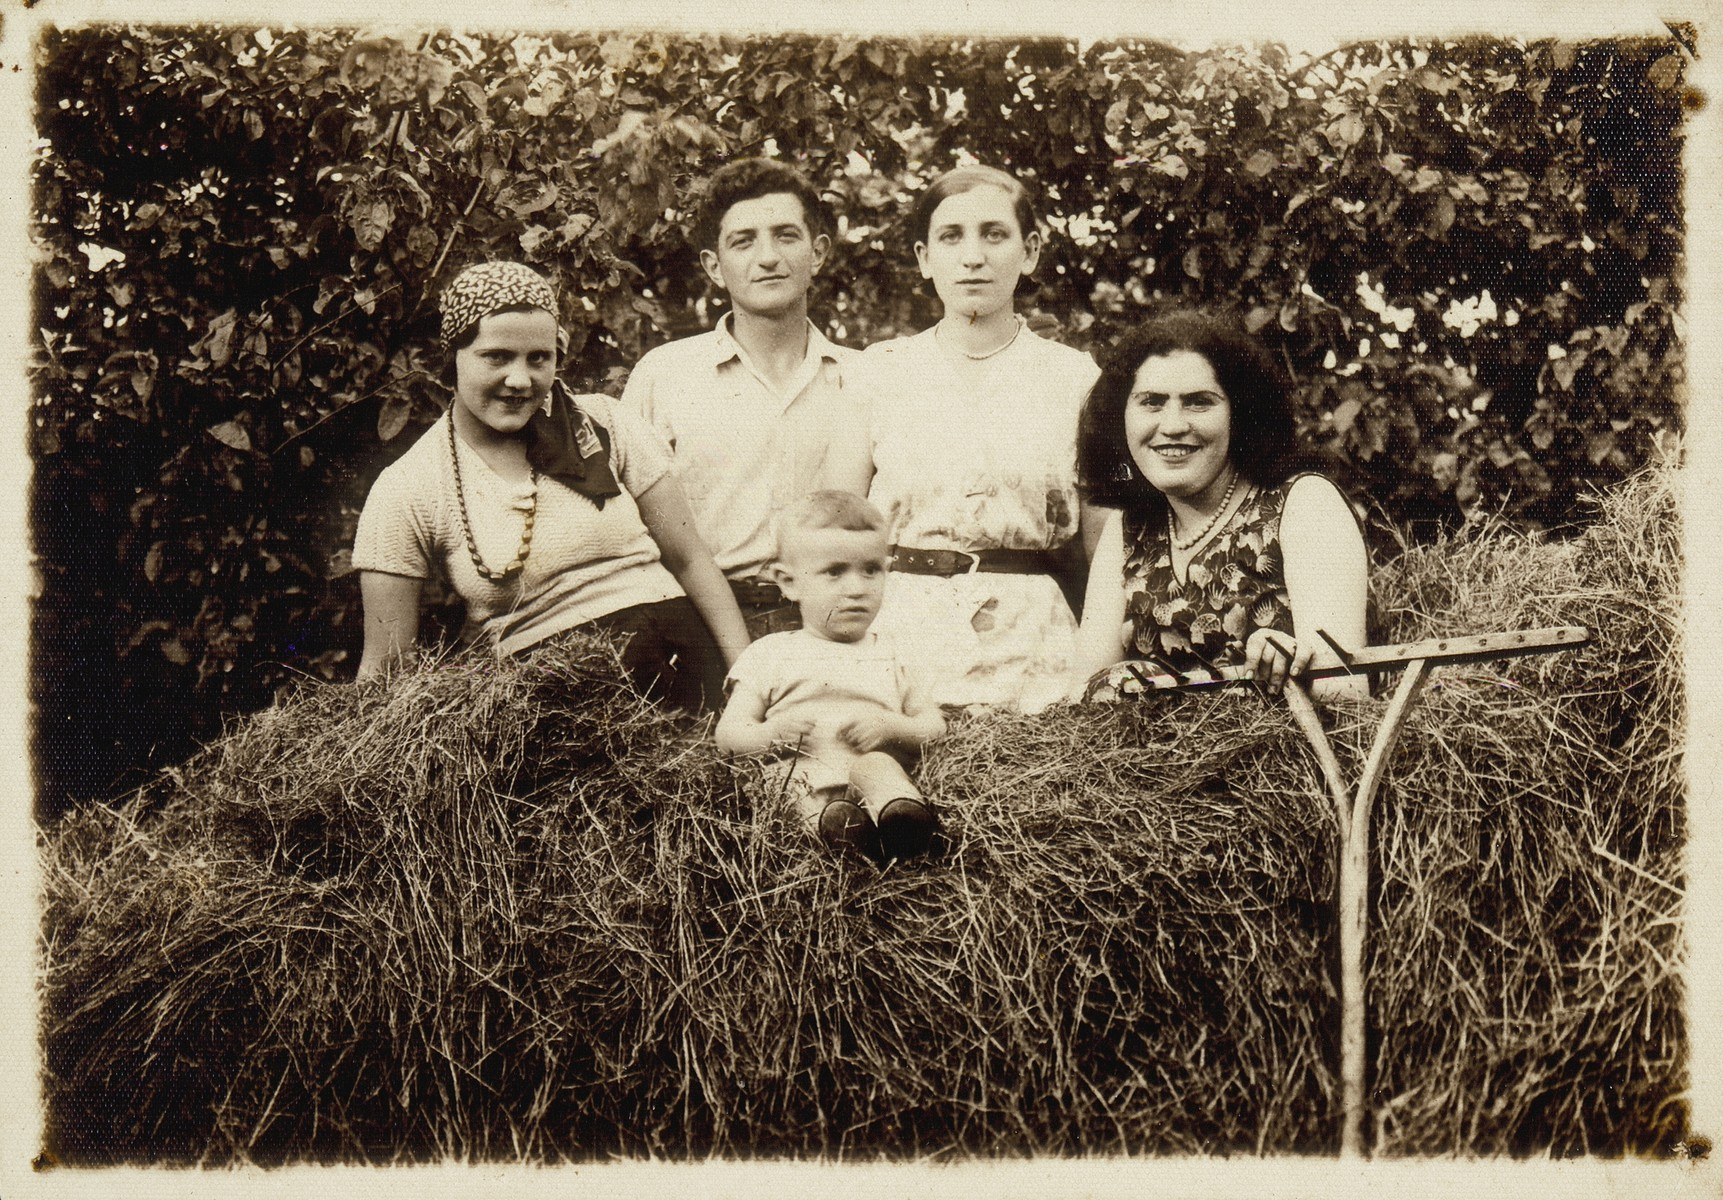 Four young people and a young baby sit on top of a hay wagon.   (right to left) Miriam Koppelman Rushkin, an unidentified visitor, Shepske Sonenson, Malka Nochomowicz, and baby Elisha Rushkin.  Miriam died a natural death; all the others were killed by the Germans during the September 1941 mass shooting action in Eisiskes.